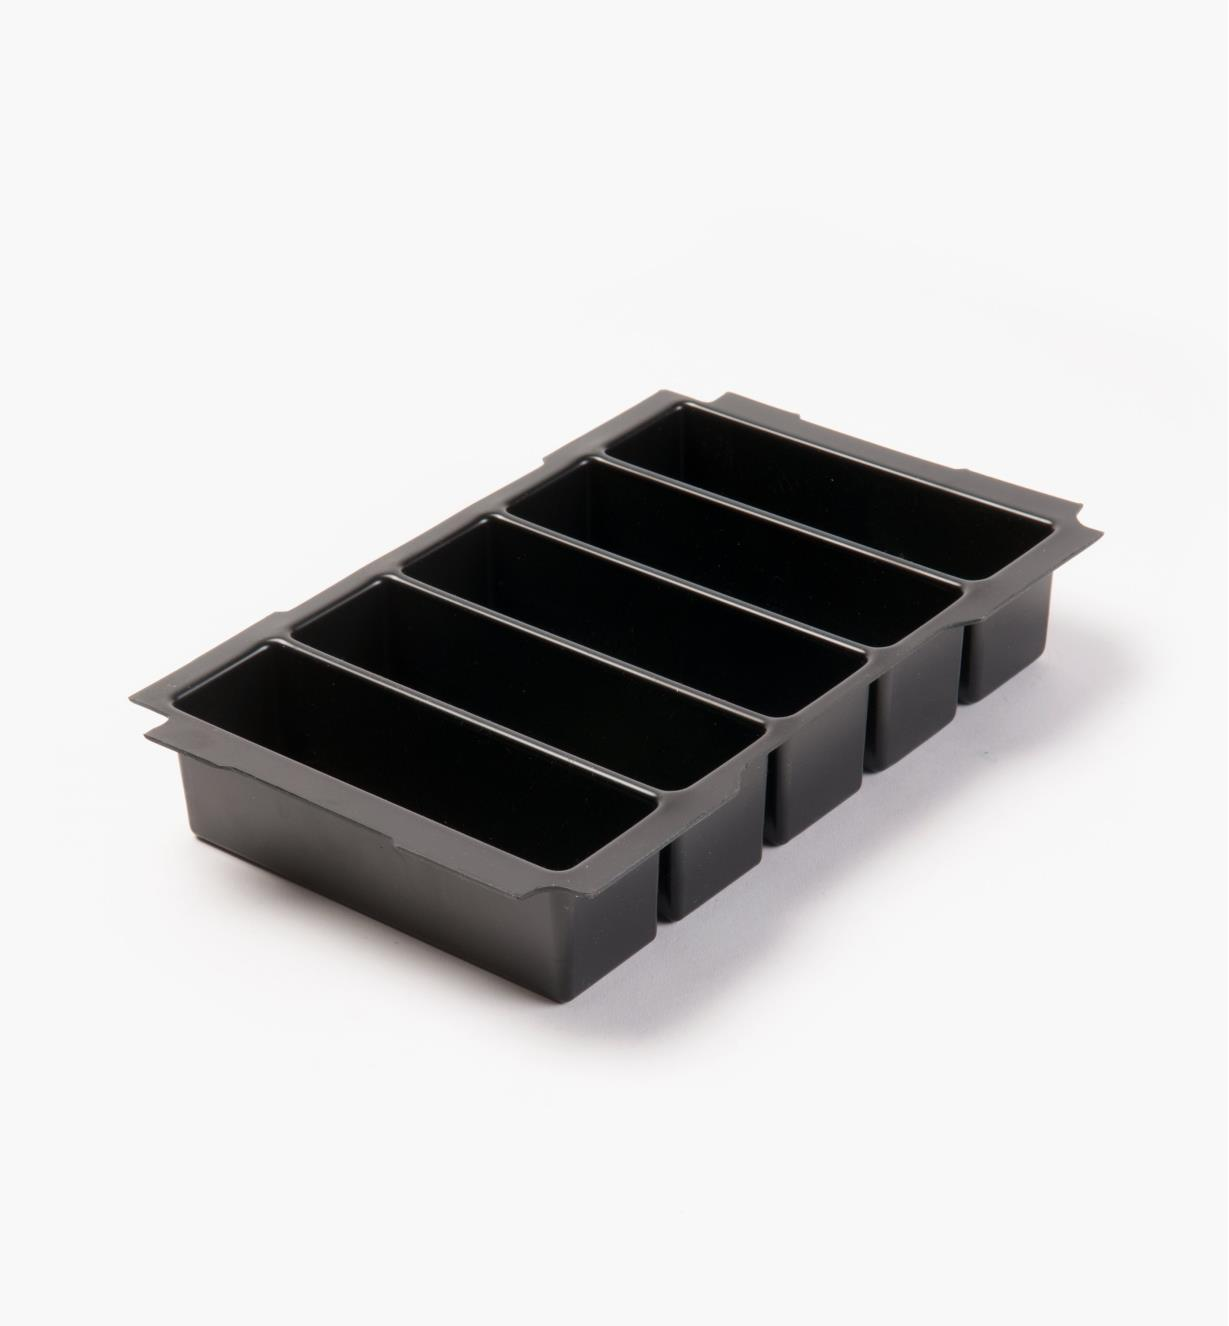 68K4531 - 5-Compartment Tray for T-Loc Mini Systainer